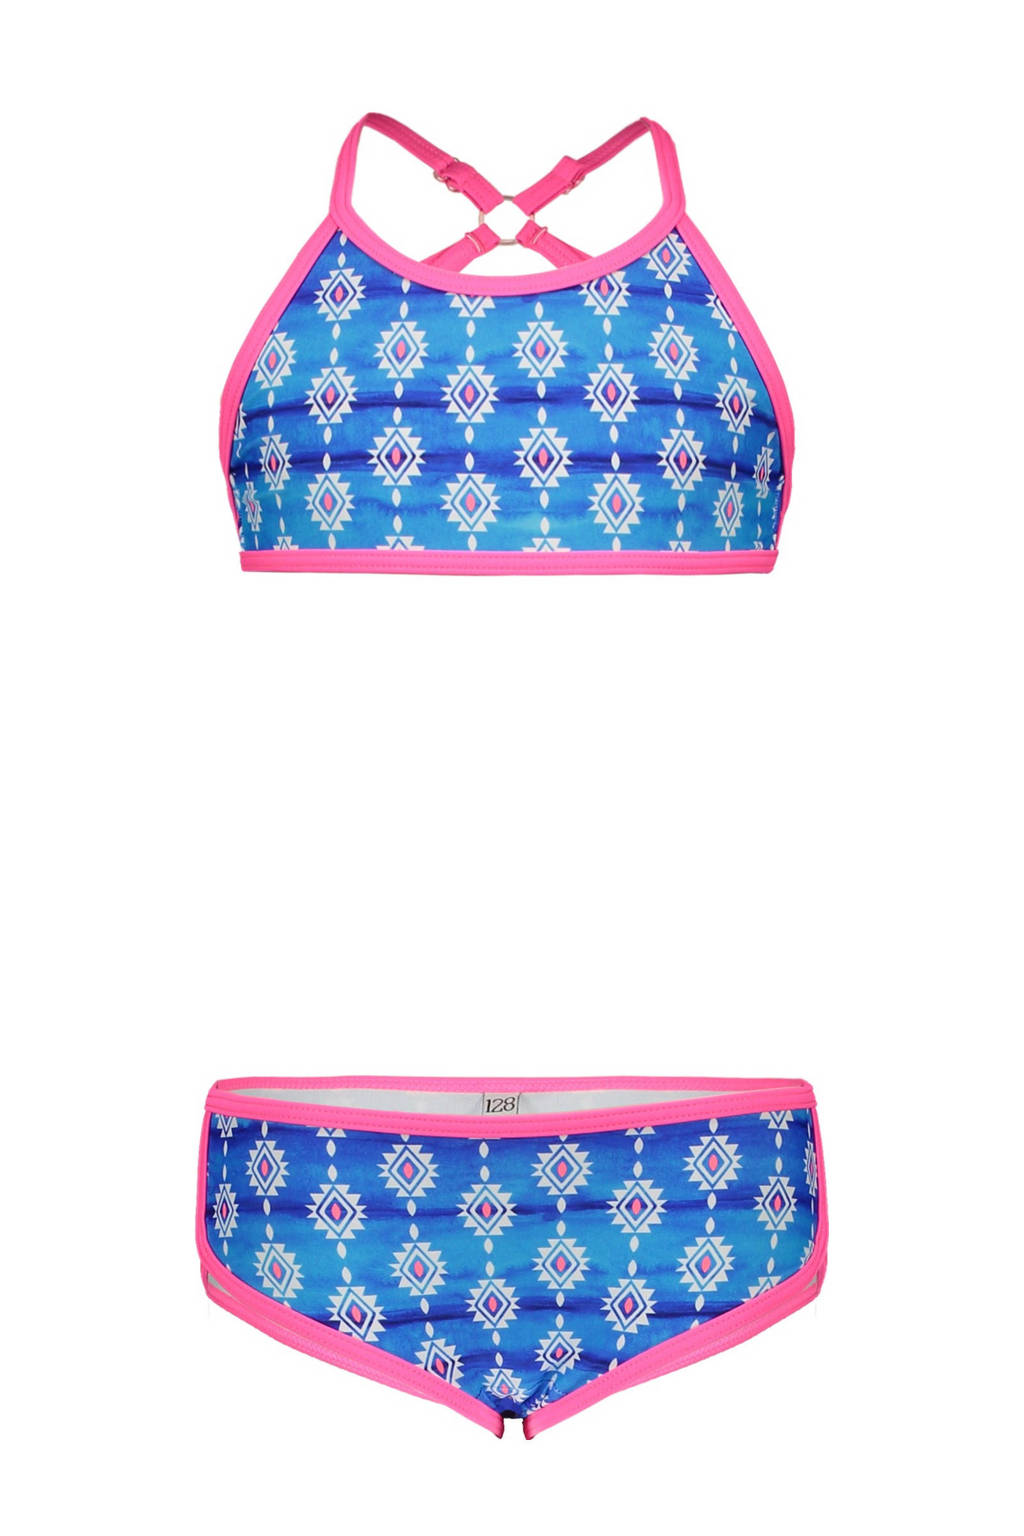 Just Beach crop bikini met all over print blauw/wit/roze, Blauw/wit/roze